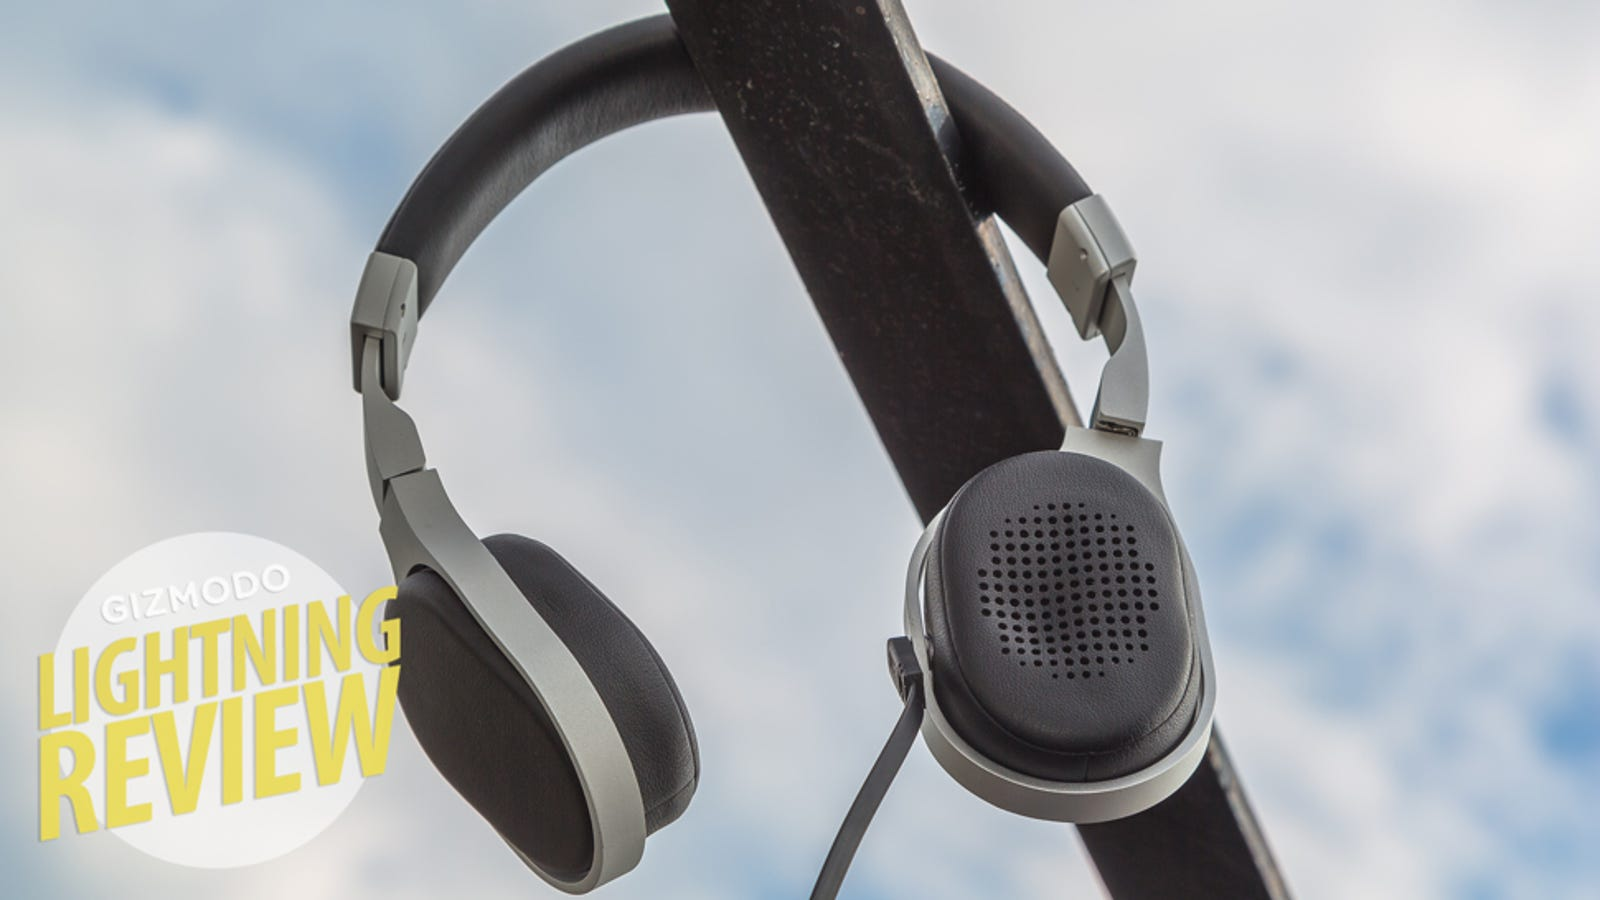 headphones wireless level - KEF M500 Headphone Review: Perfect Balance of Sound and Comfort